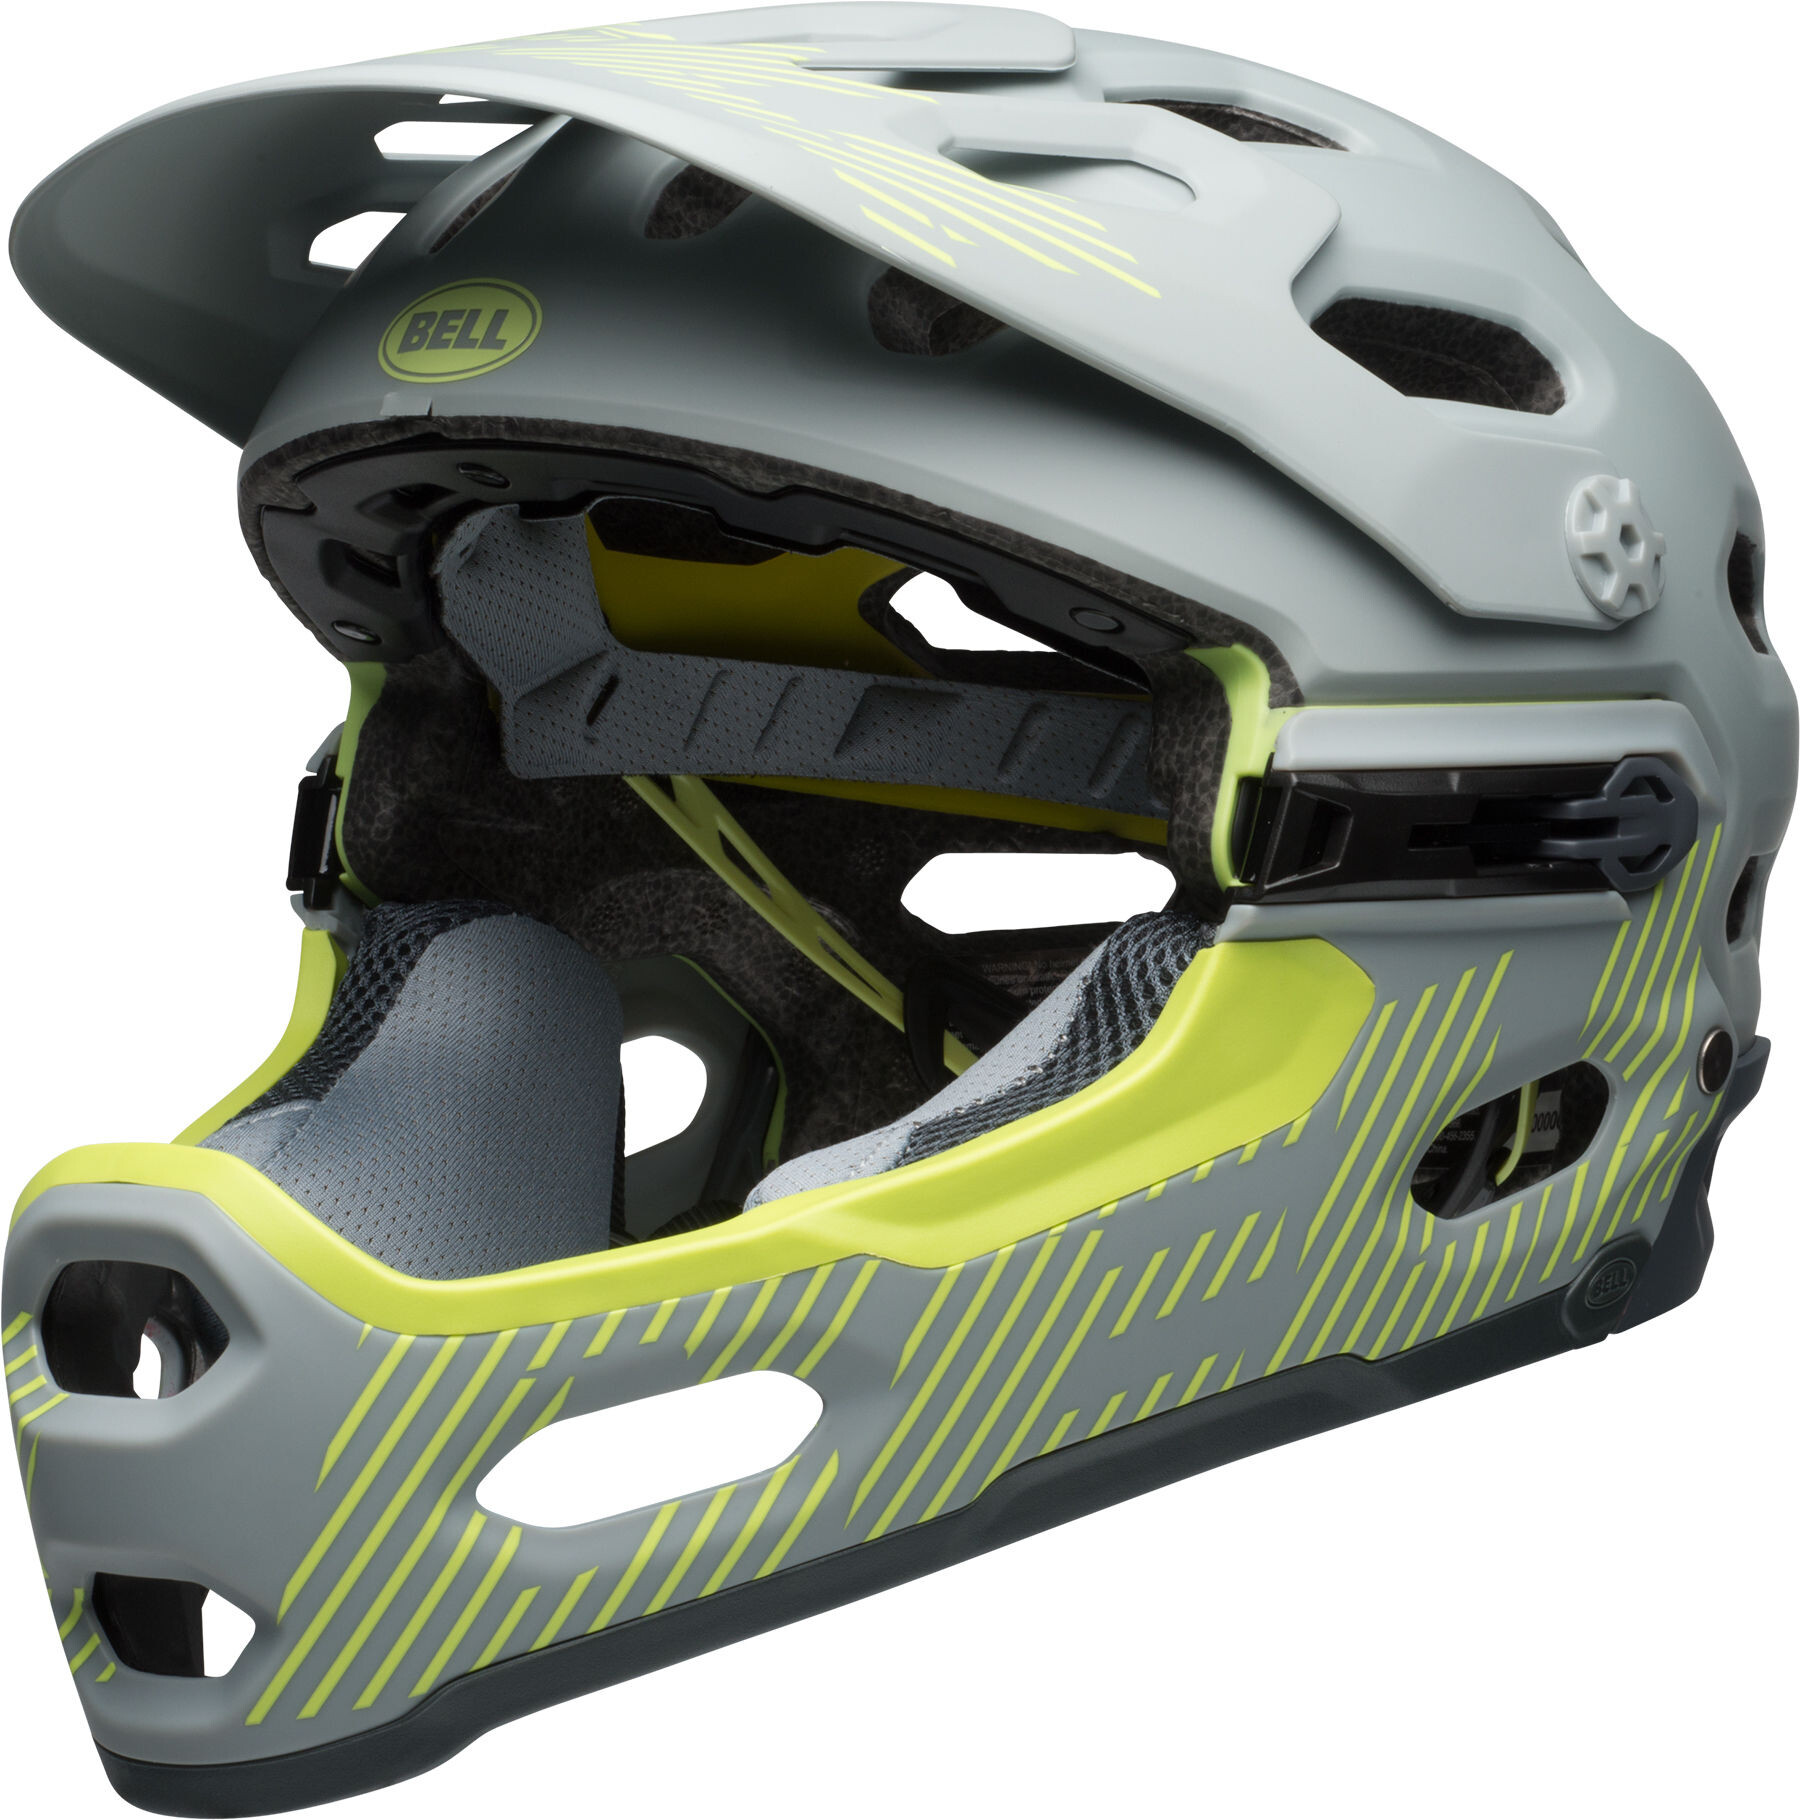 bell super 3r mips mtb helmet matte smoke pear online kaufen. Black Bedroom Furniture Sets. Home Design Ideas